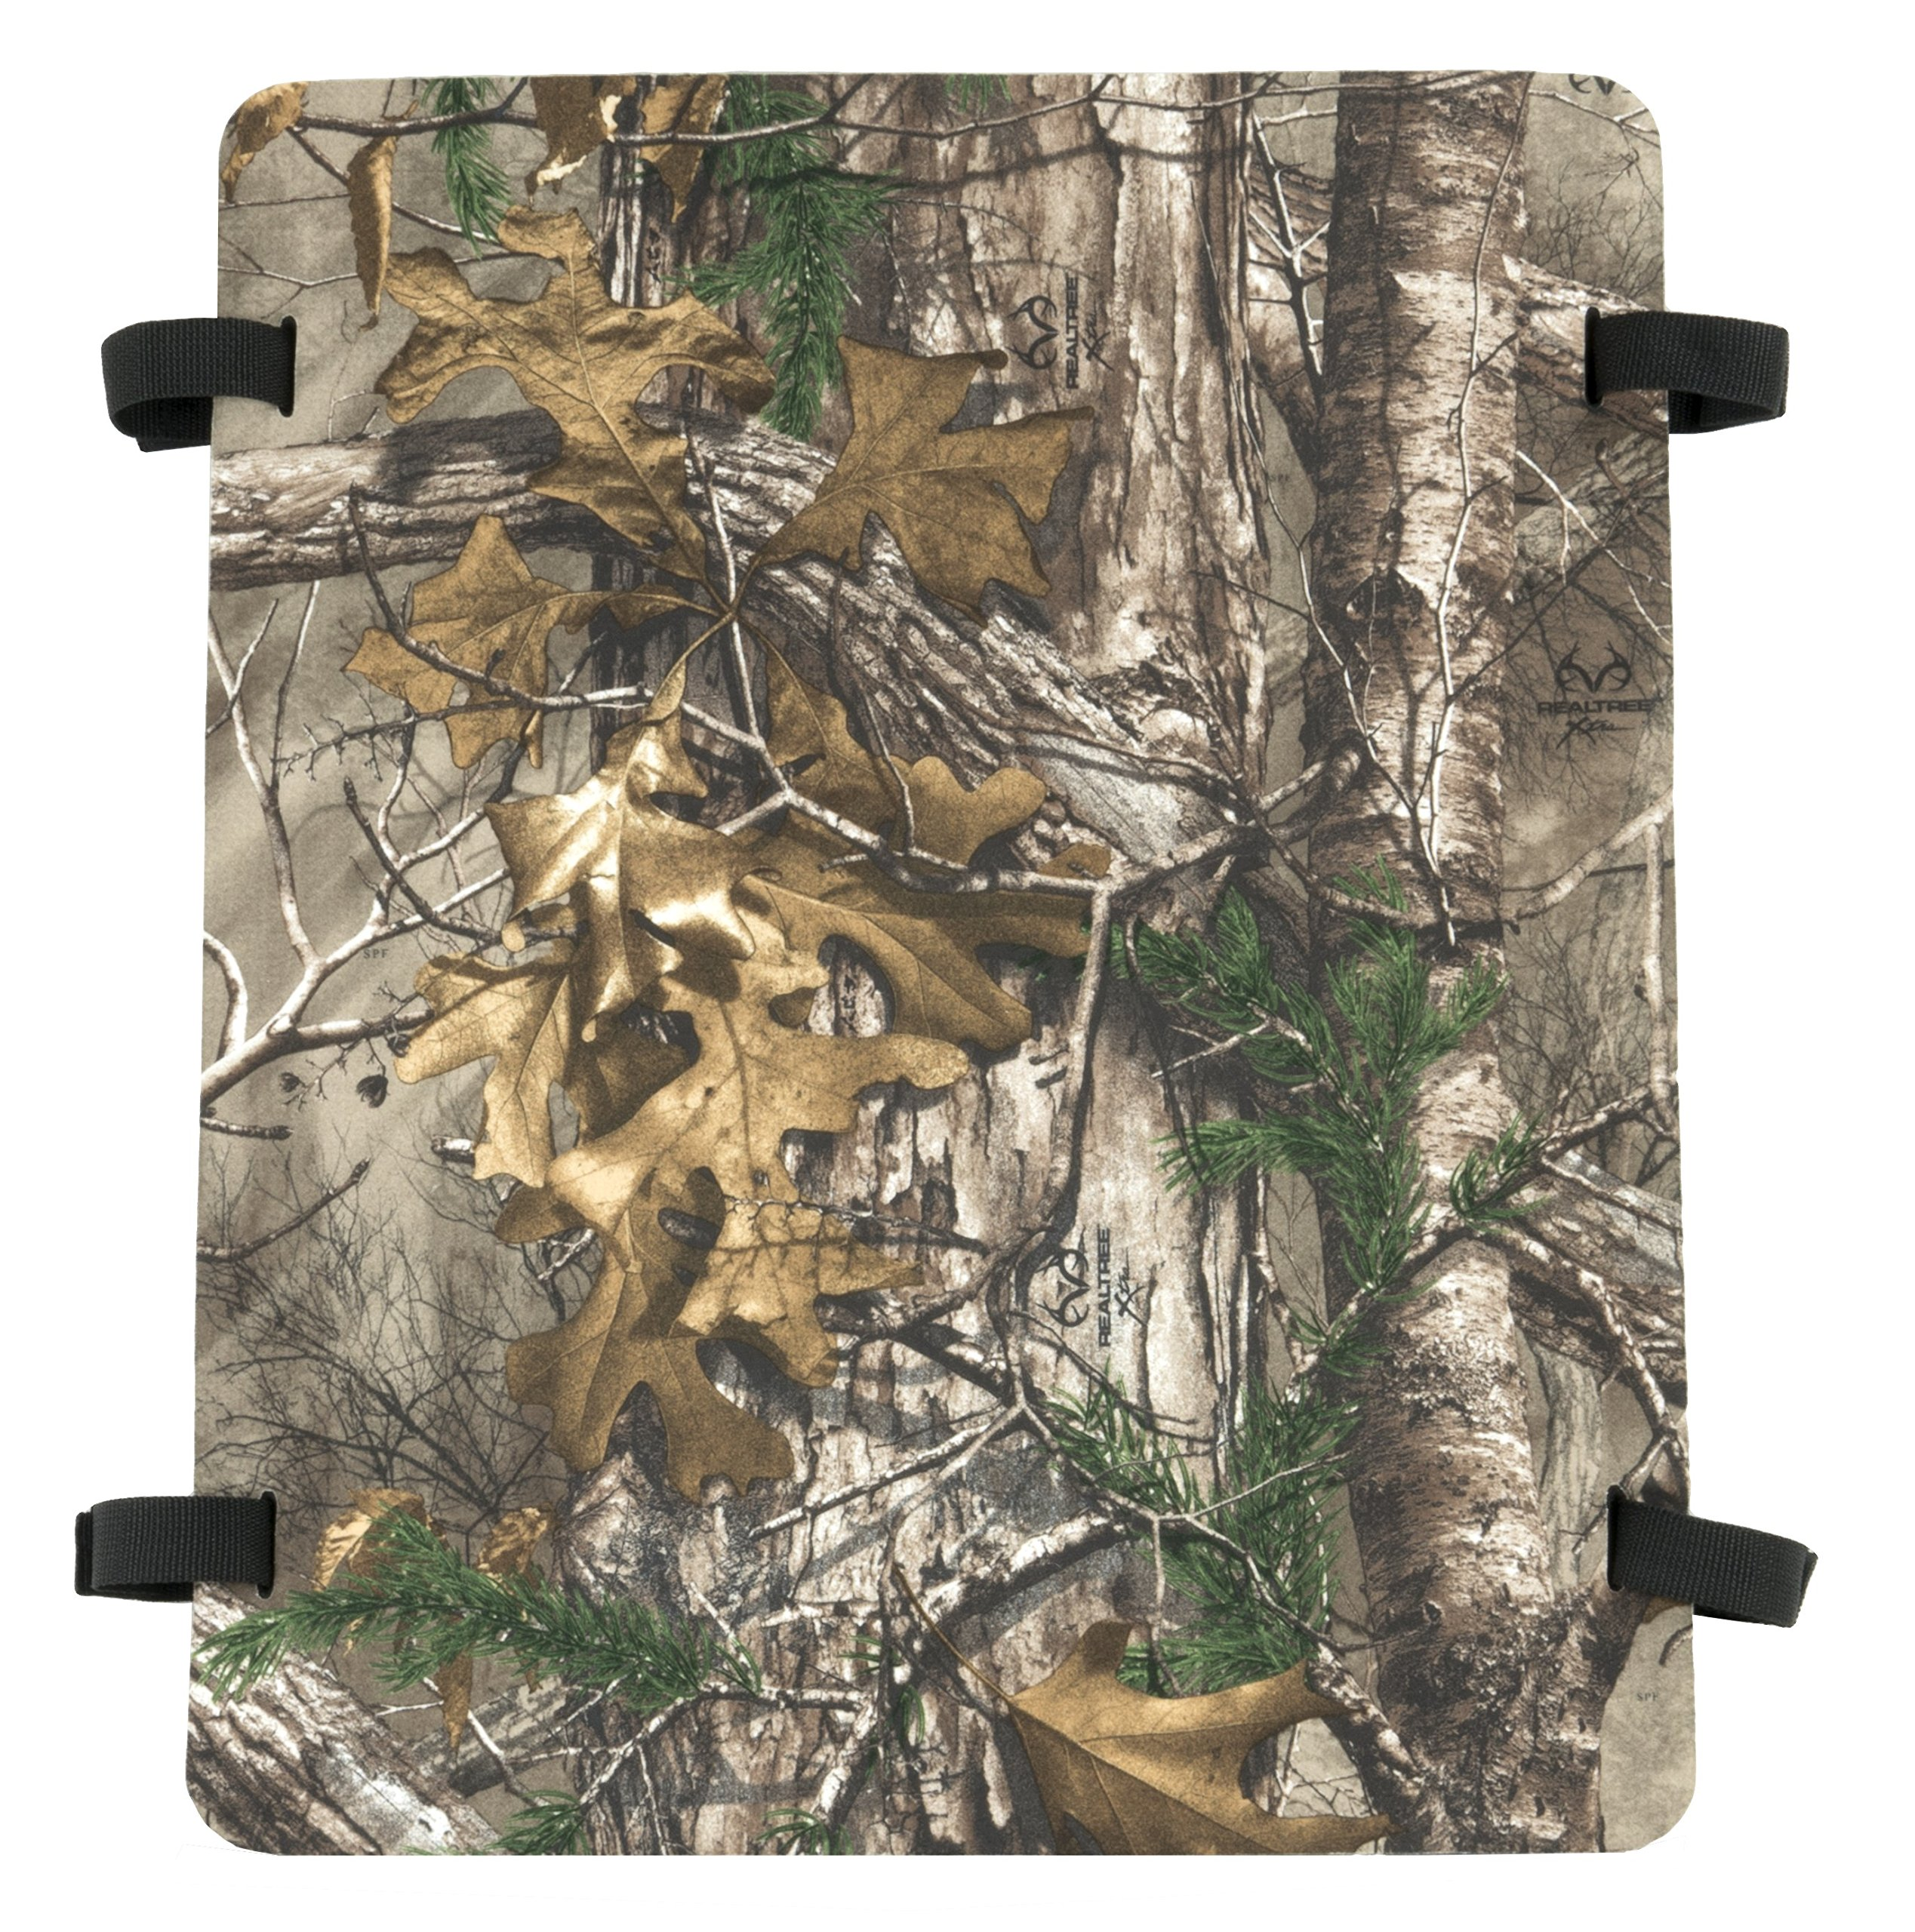 Northeast Products Therm-A-SEAT Therm-a-Mat Tree Stand Insulated Foot Cushion, Realtree Xtra, Large by Northeast Products